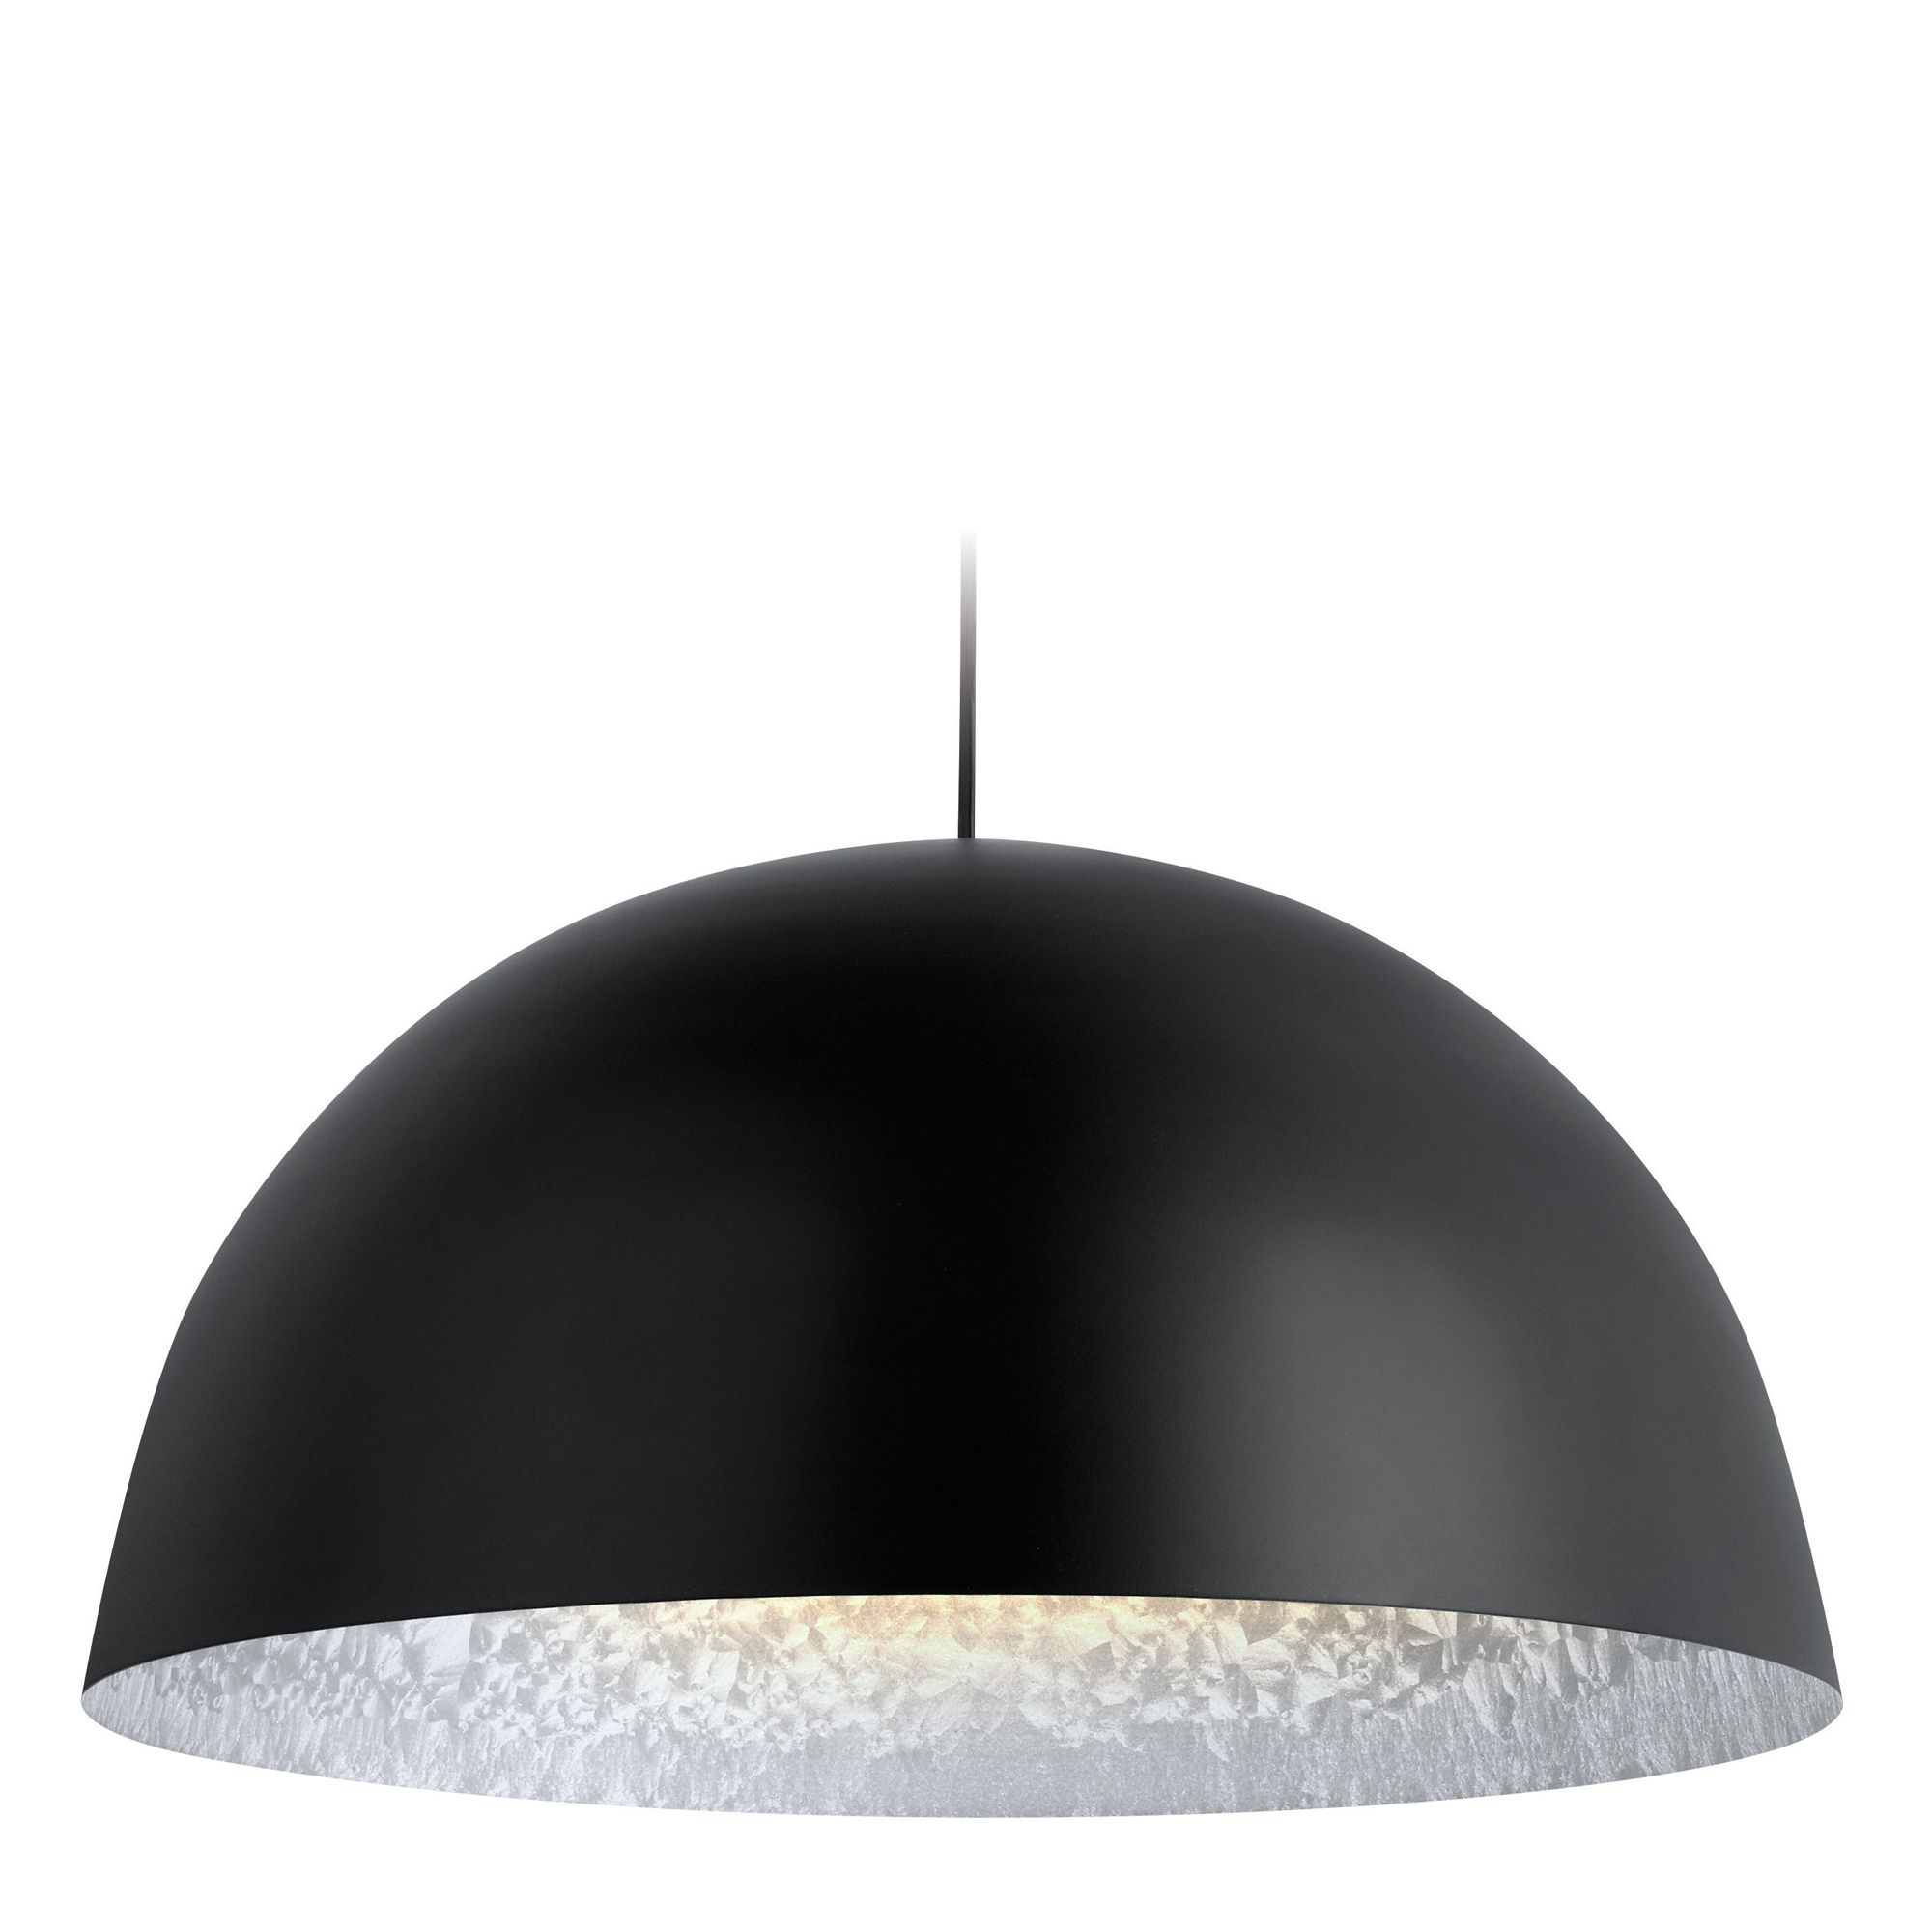 ceilings room pendant ceiling pin dining light fixture lighting paper modern mache hemisphere black lamp